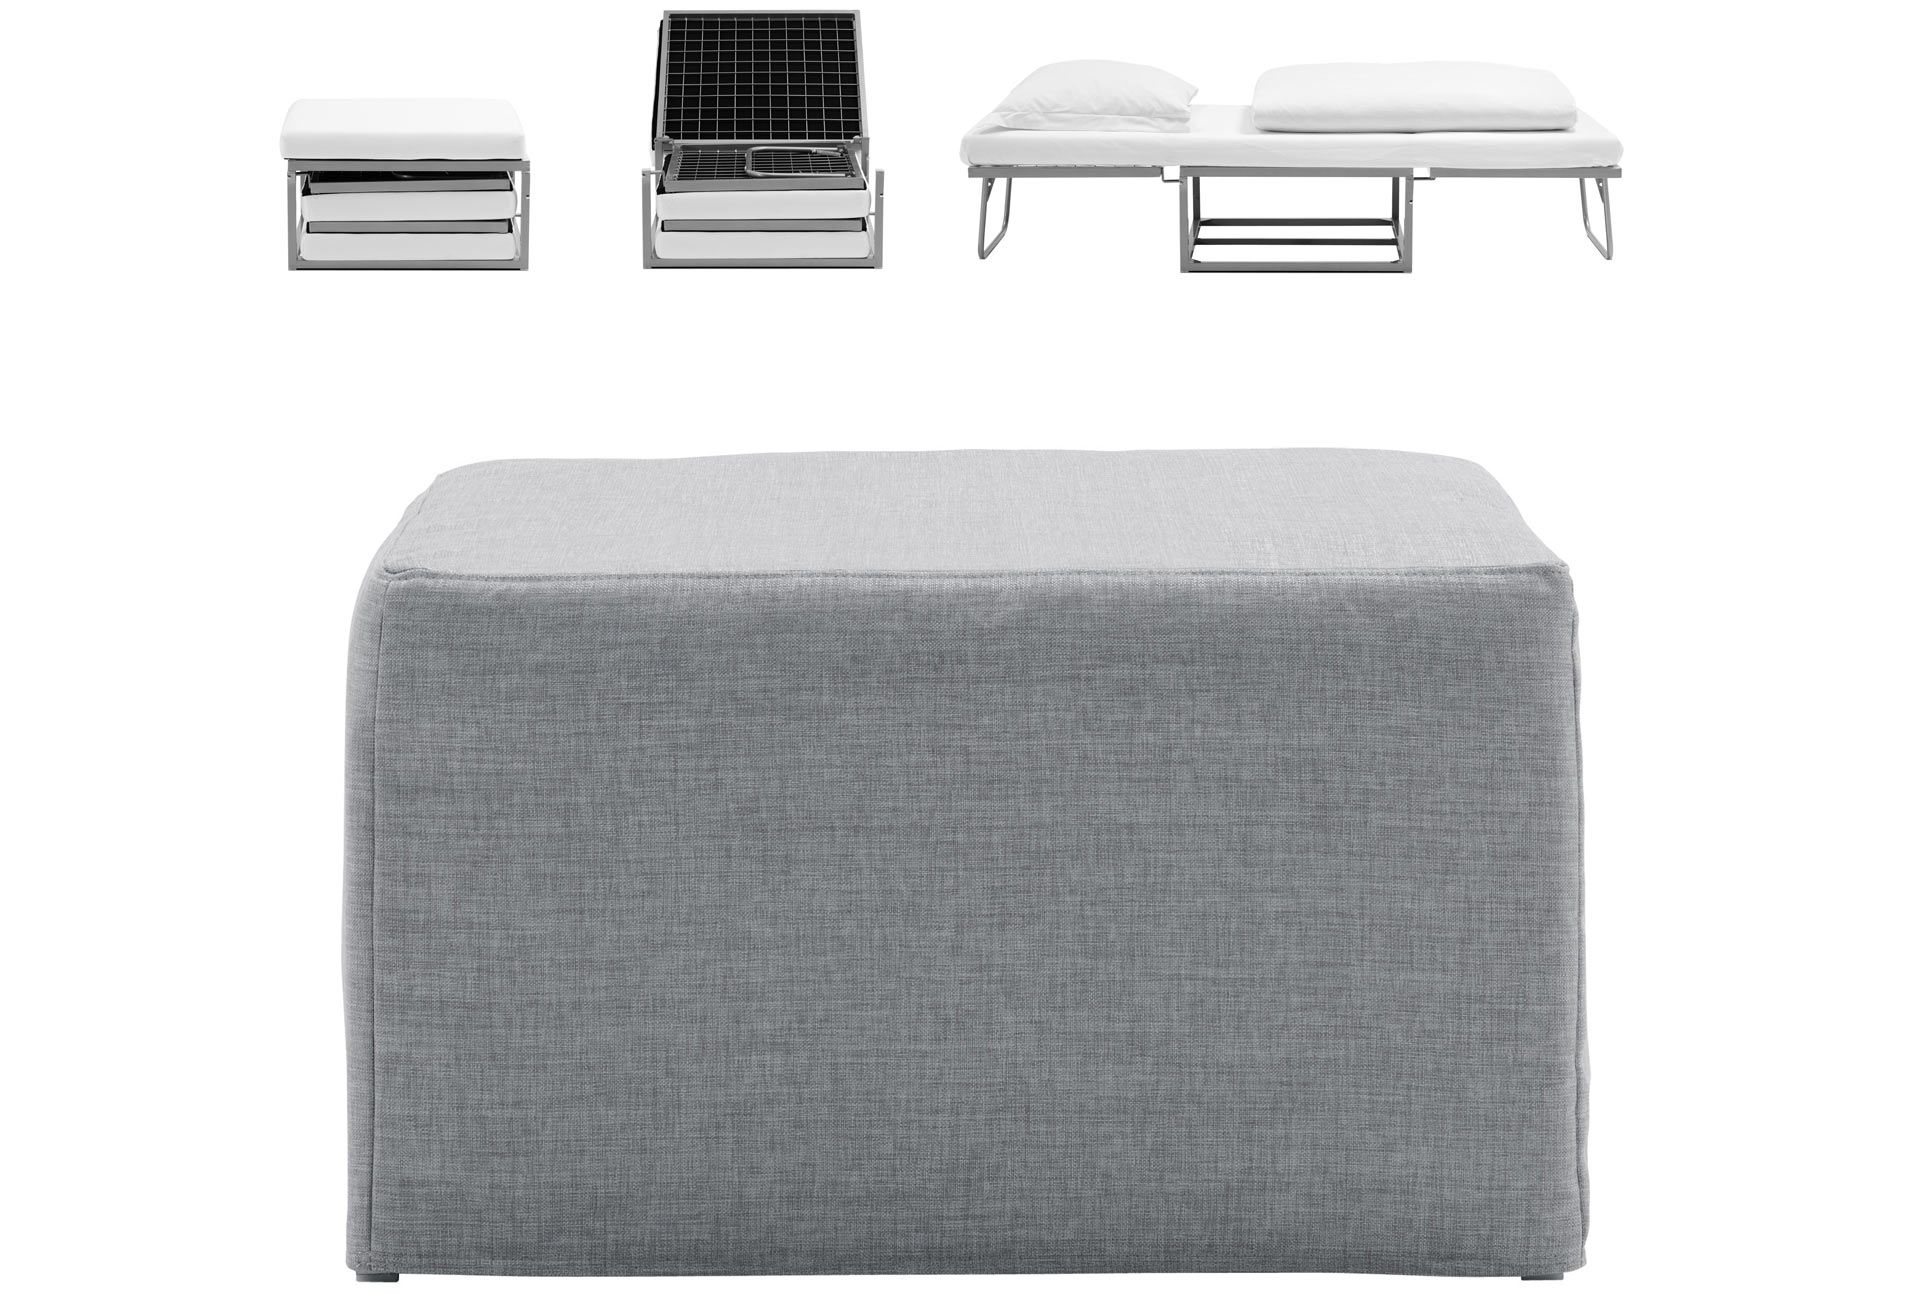 Xtra poufbed easily converts from a footstool to a bed for